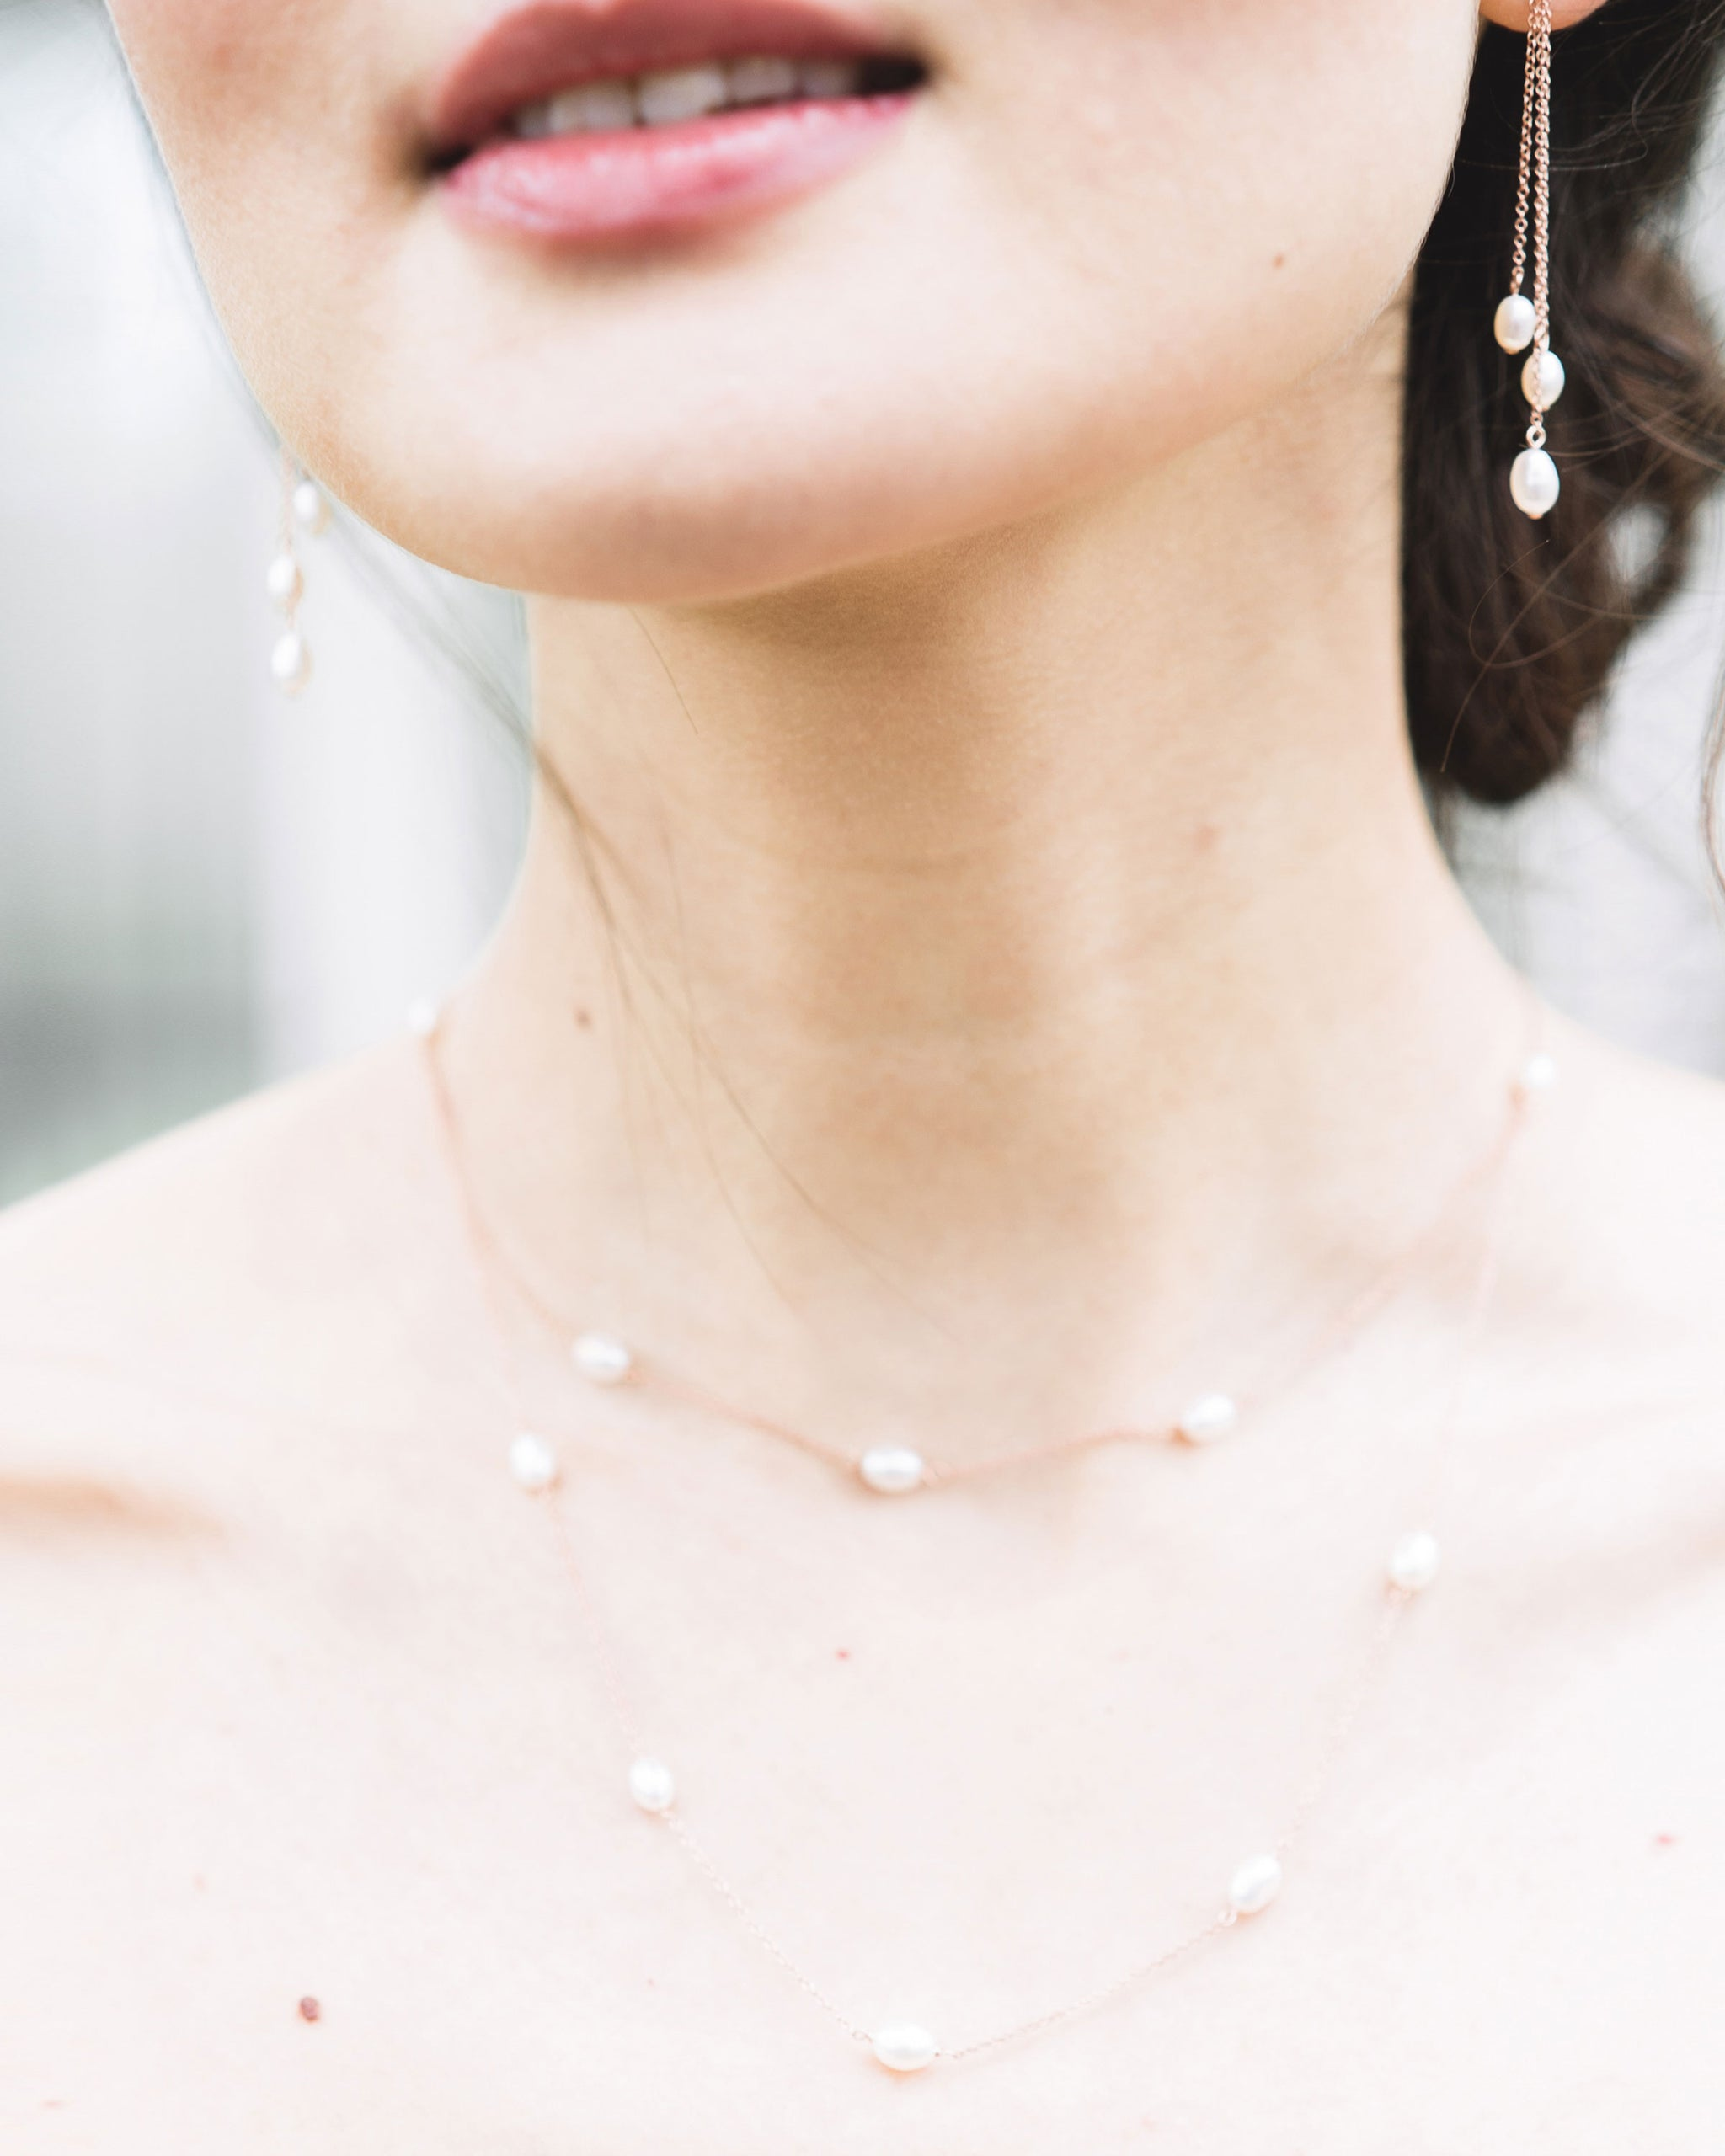 A close-up view of the dainty layered pearl necklace, paired with the dainty pearl trio earrings.